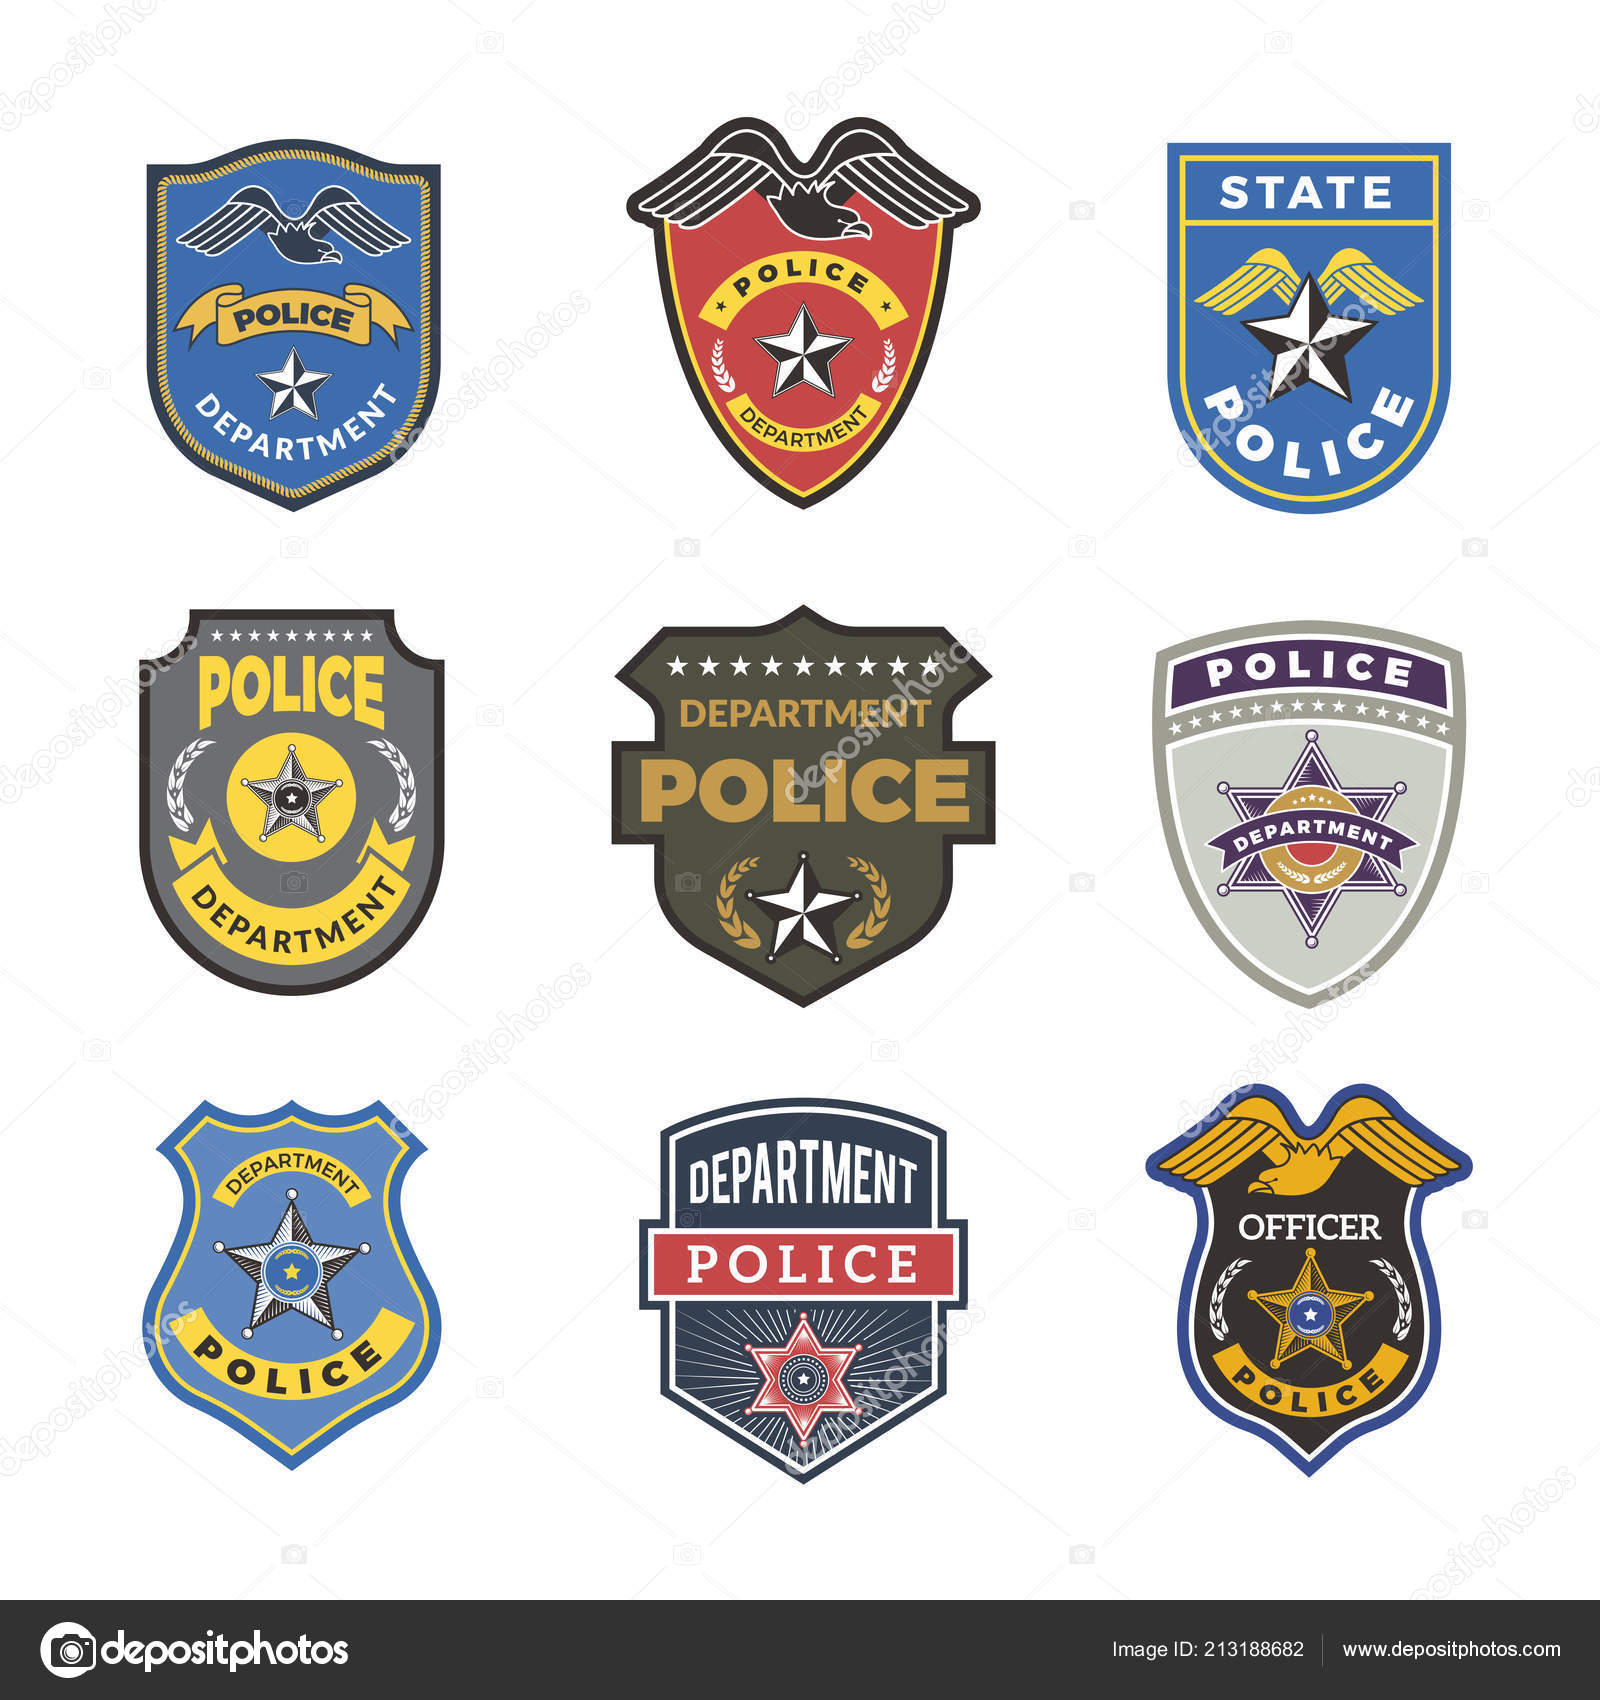 Police Badges Security Signs And Symbols Government Department